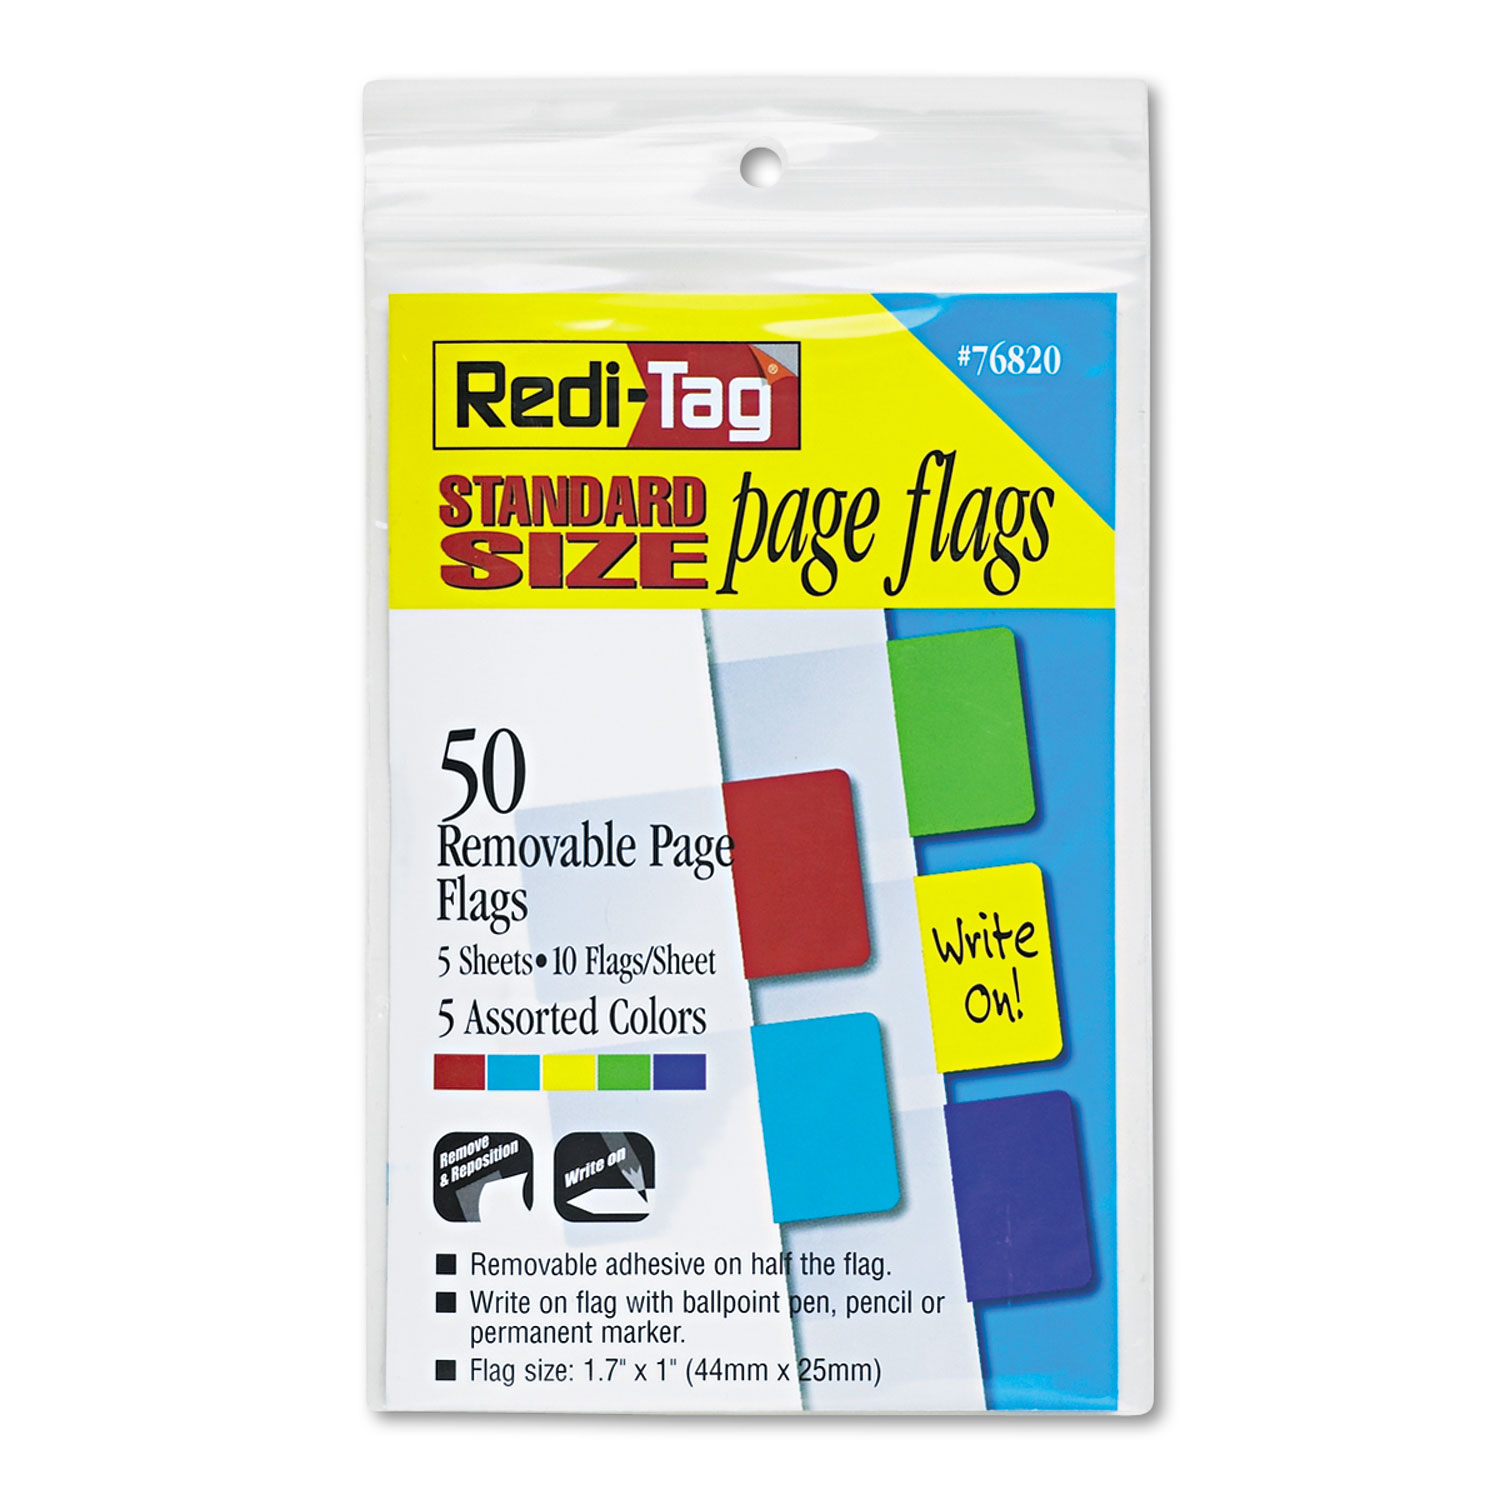 Removable Page Flags, Red/Blue/Green/Yellow/Purple, 10/Color, 50/Pack